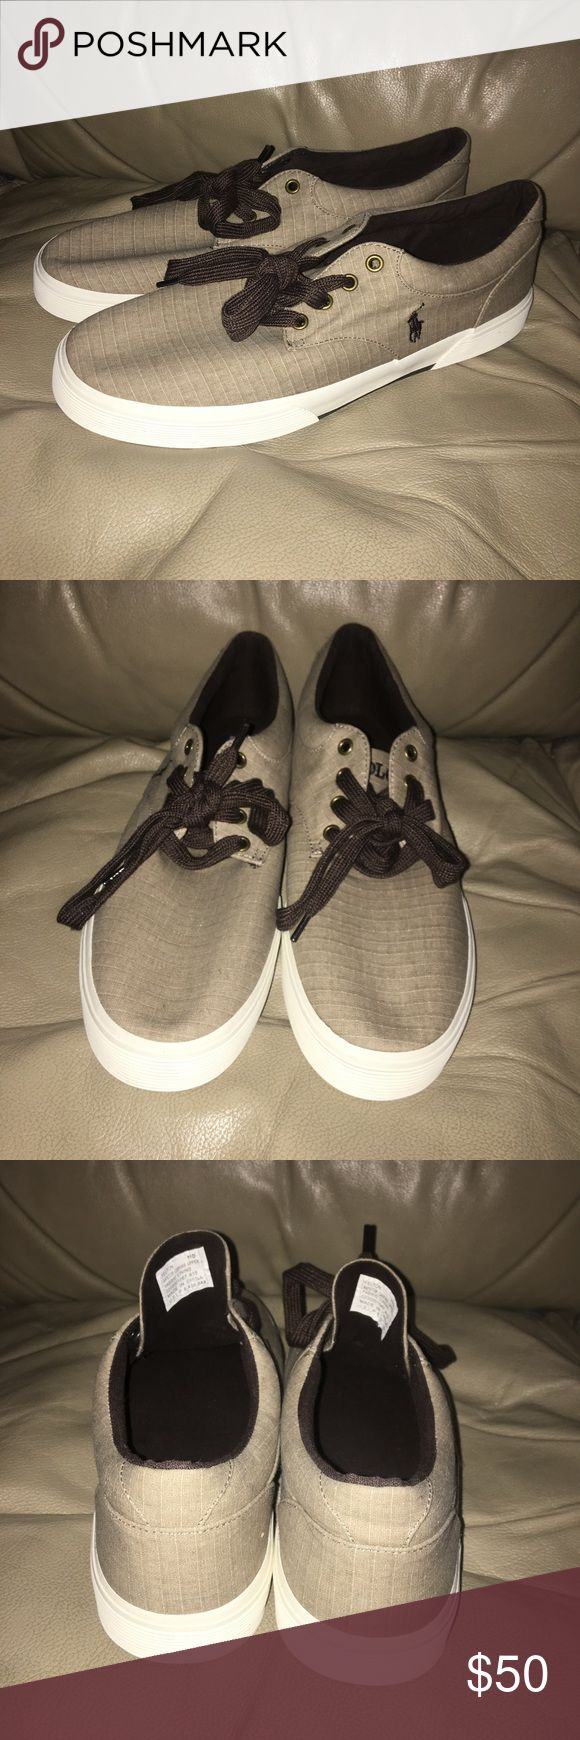 Men's Polo Shoes Size 11D Men's Polo Shoes Size 11D, these shoes are in excellent shape & show no signs of wear. Polo by Ralph Lauren Shoes Sneakers